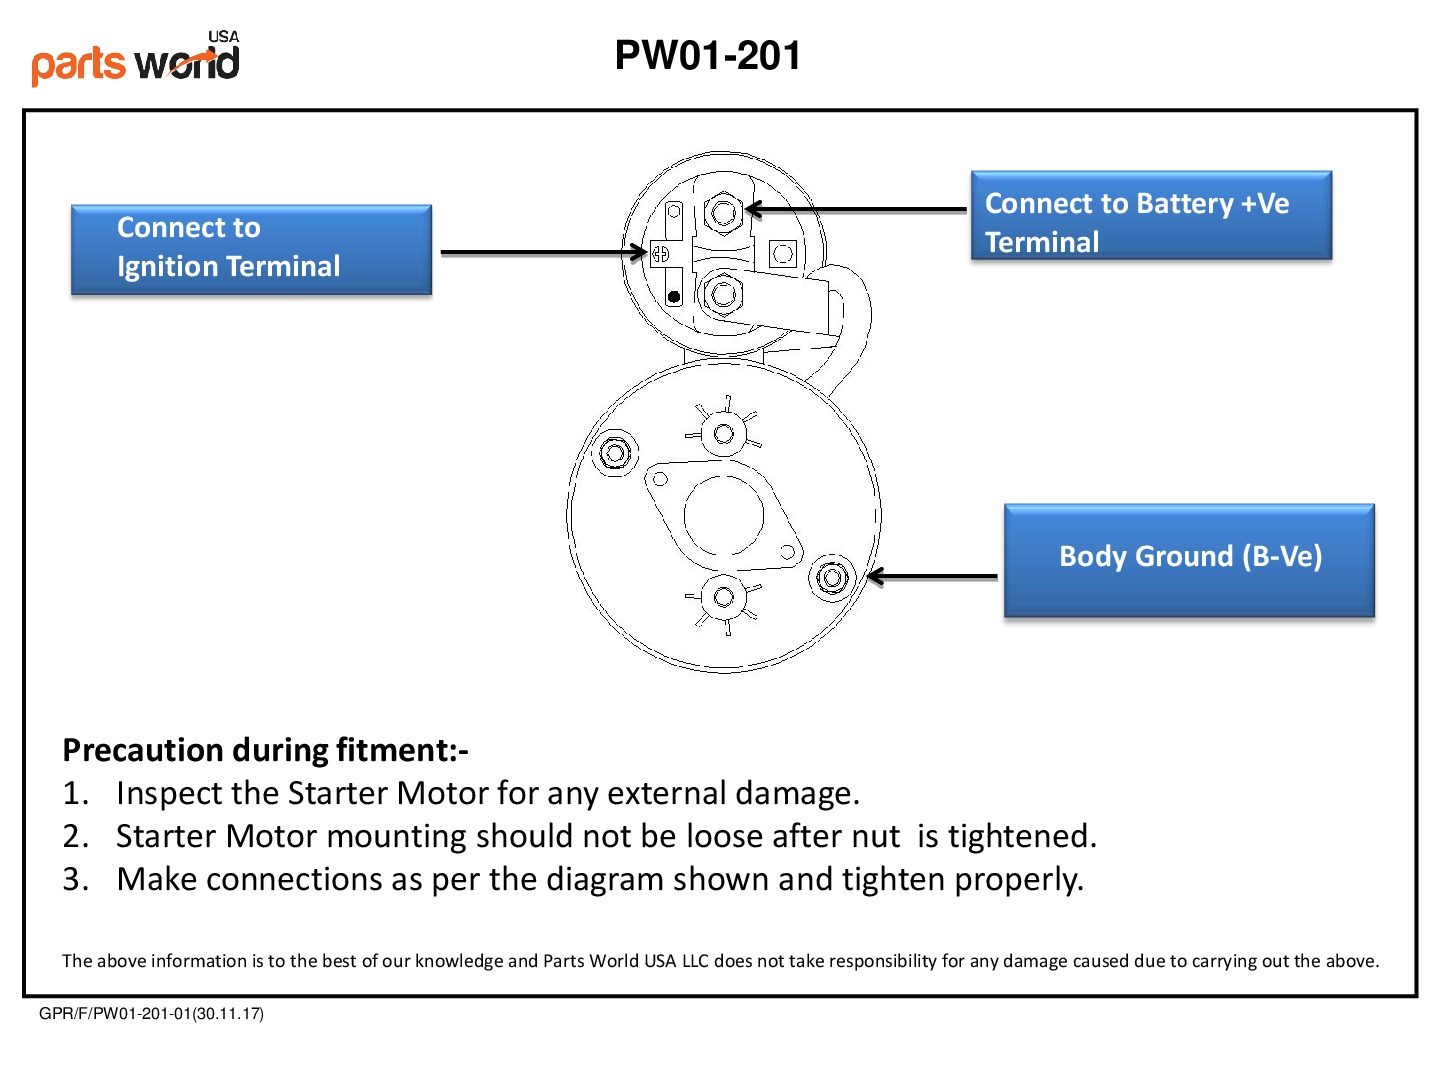 parts world usa online auto parts in usa, buy starter motorselectrical diagram of starter motor for john deere tractor